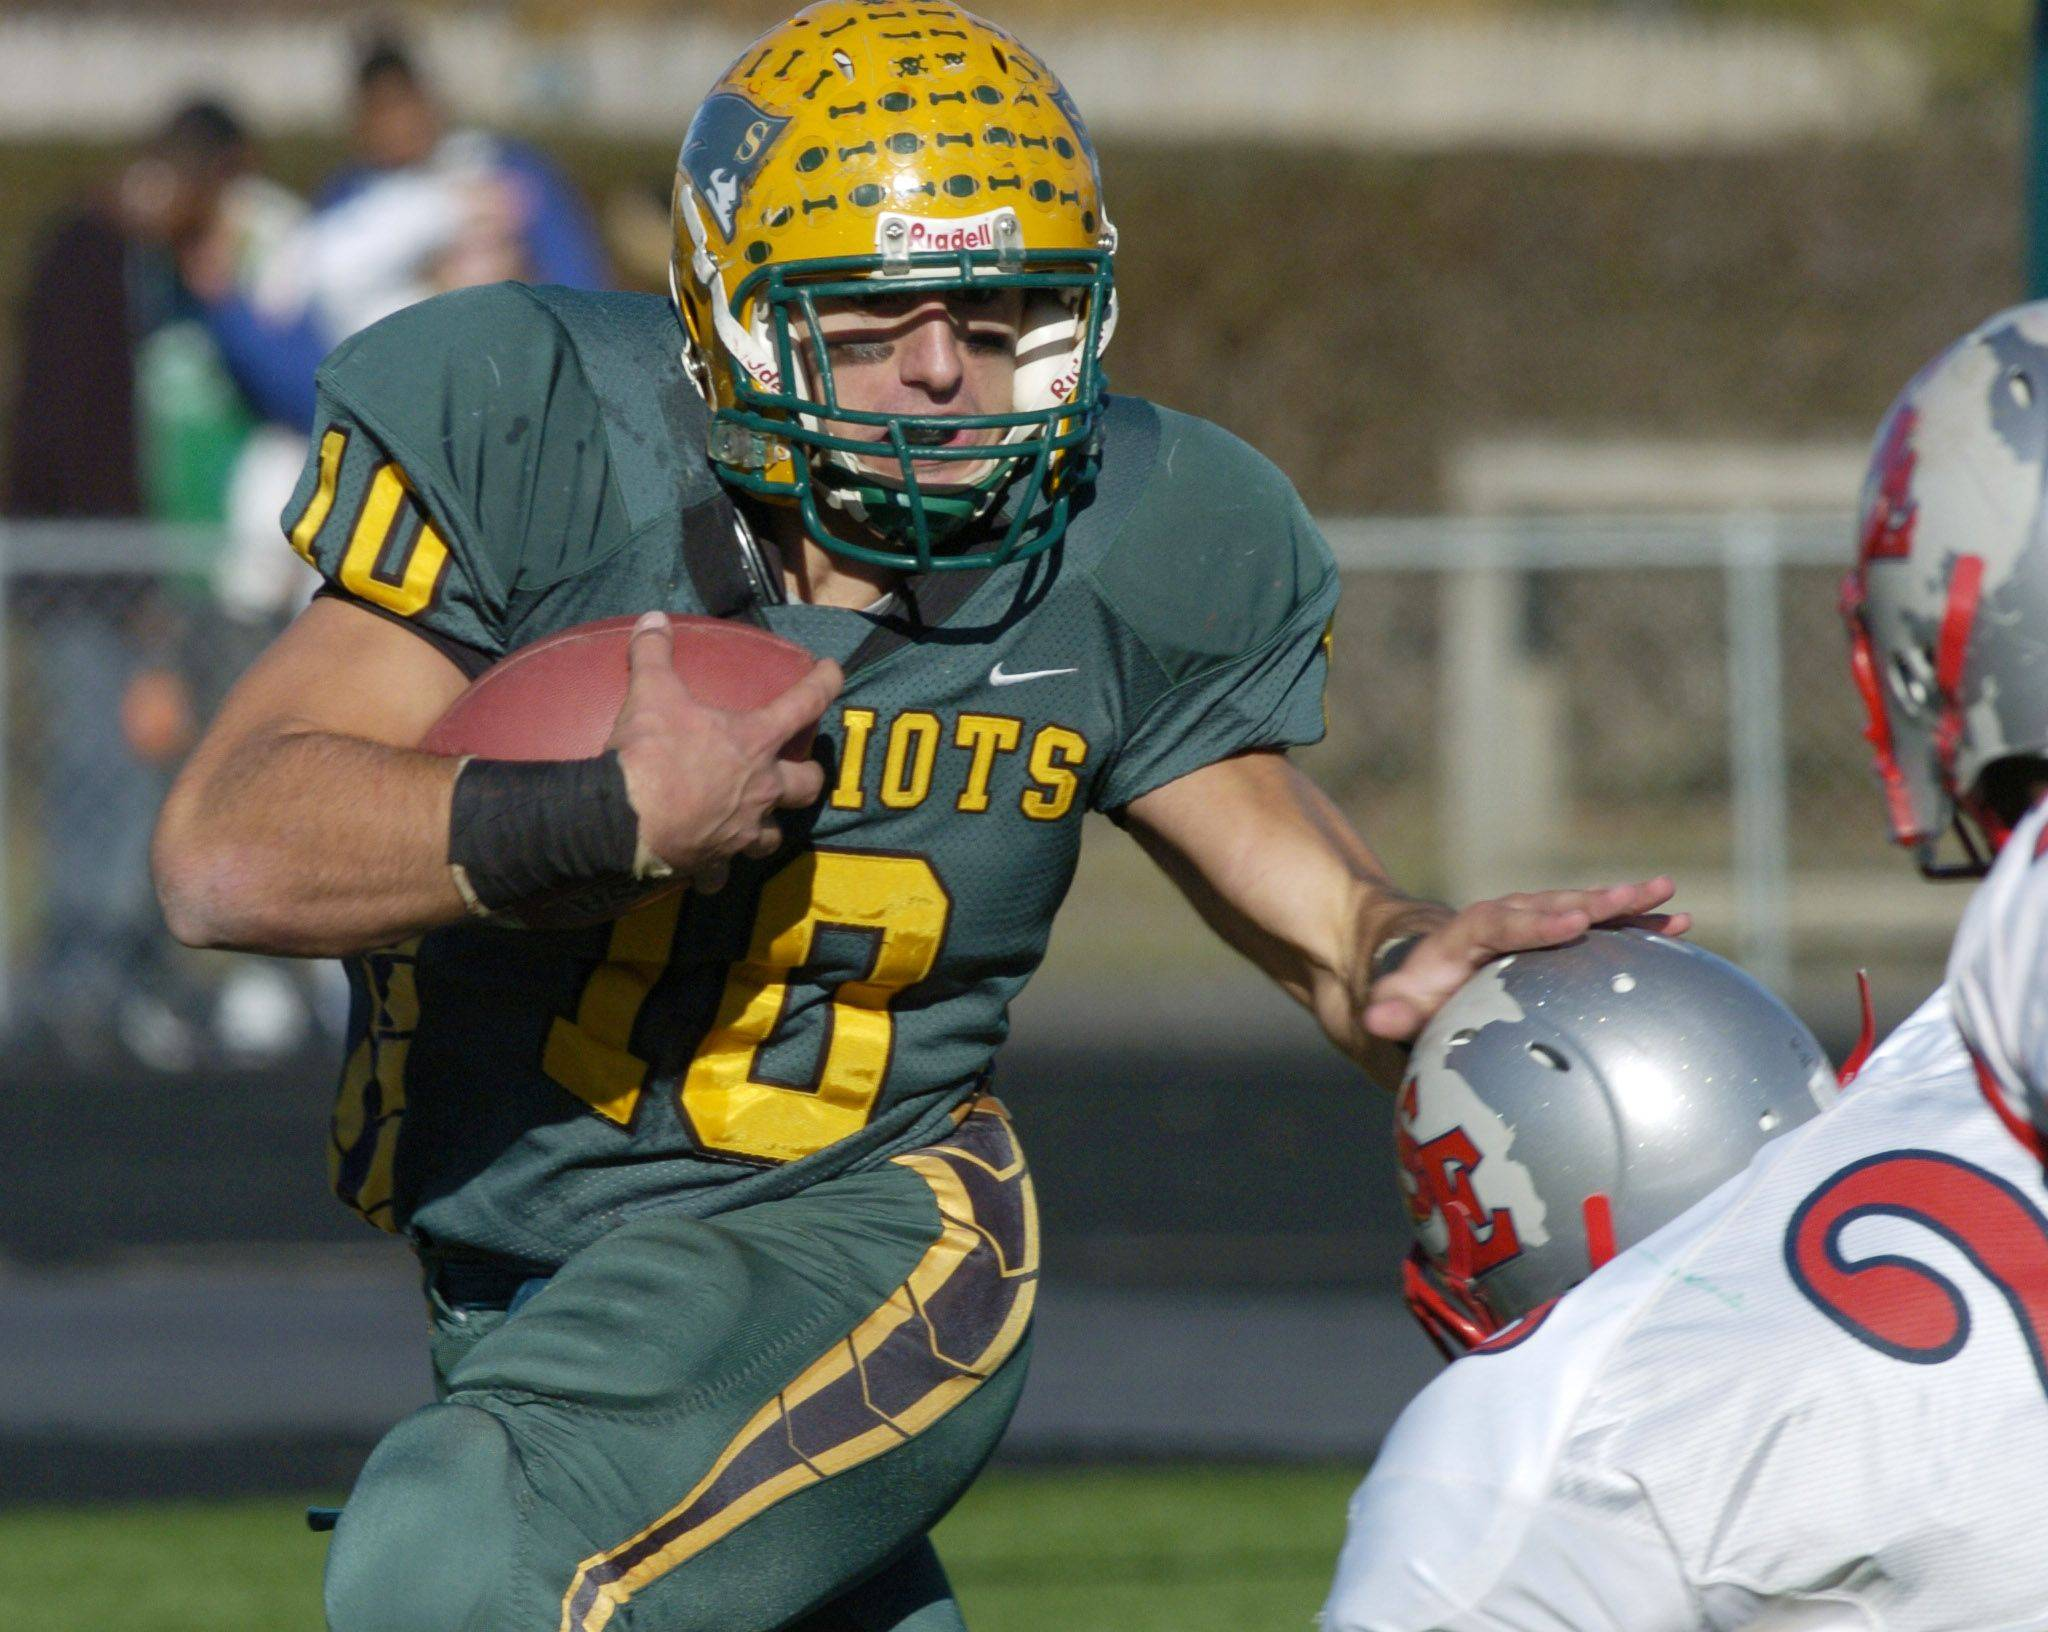 Stevenson's Joseph Cassata carries the ball against South Elgin Saturday.